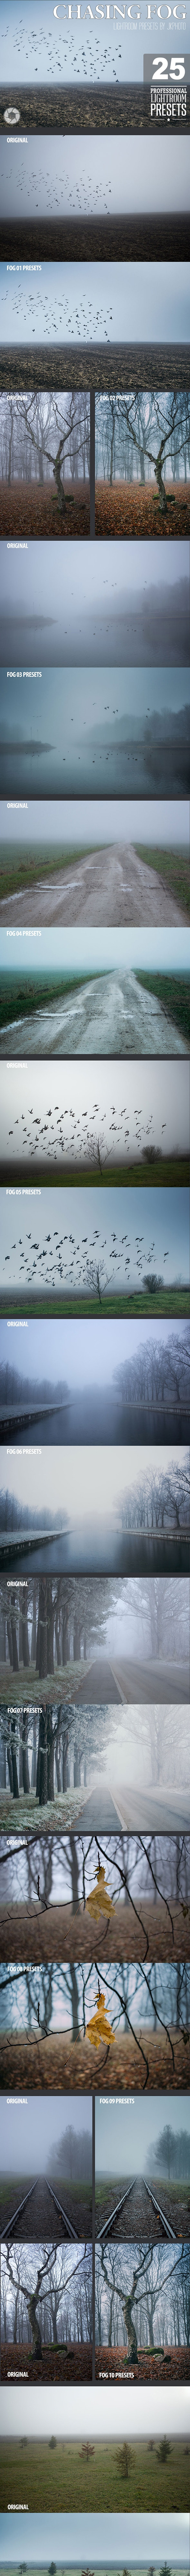 25 Chasing Fog Lightroom Presets - Landscape Lightroom Presets